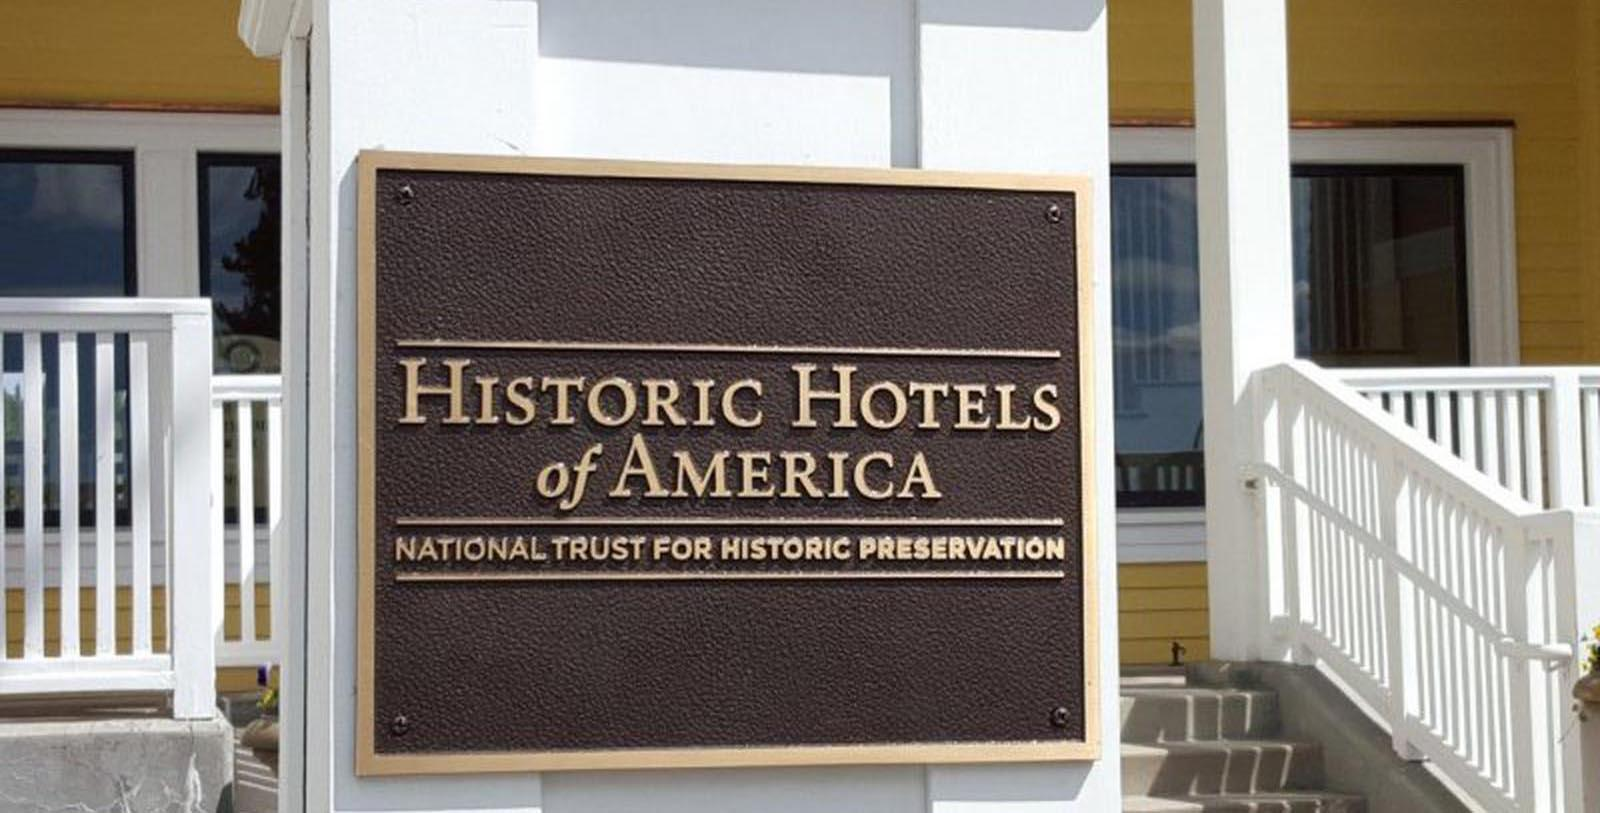 Image of Historic Hotels of America Plaque, Lake Yellowstone Hotel & Cabins, Yellowstone National Park, Wyoming, 1891, Member of Historic Hotels of America, Discover